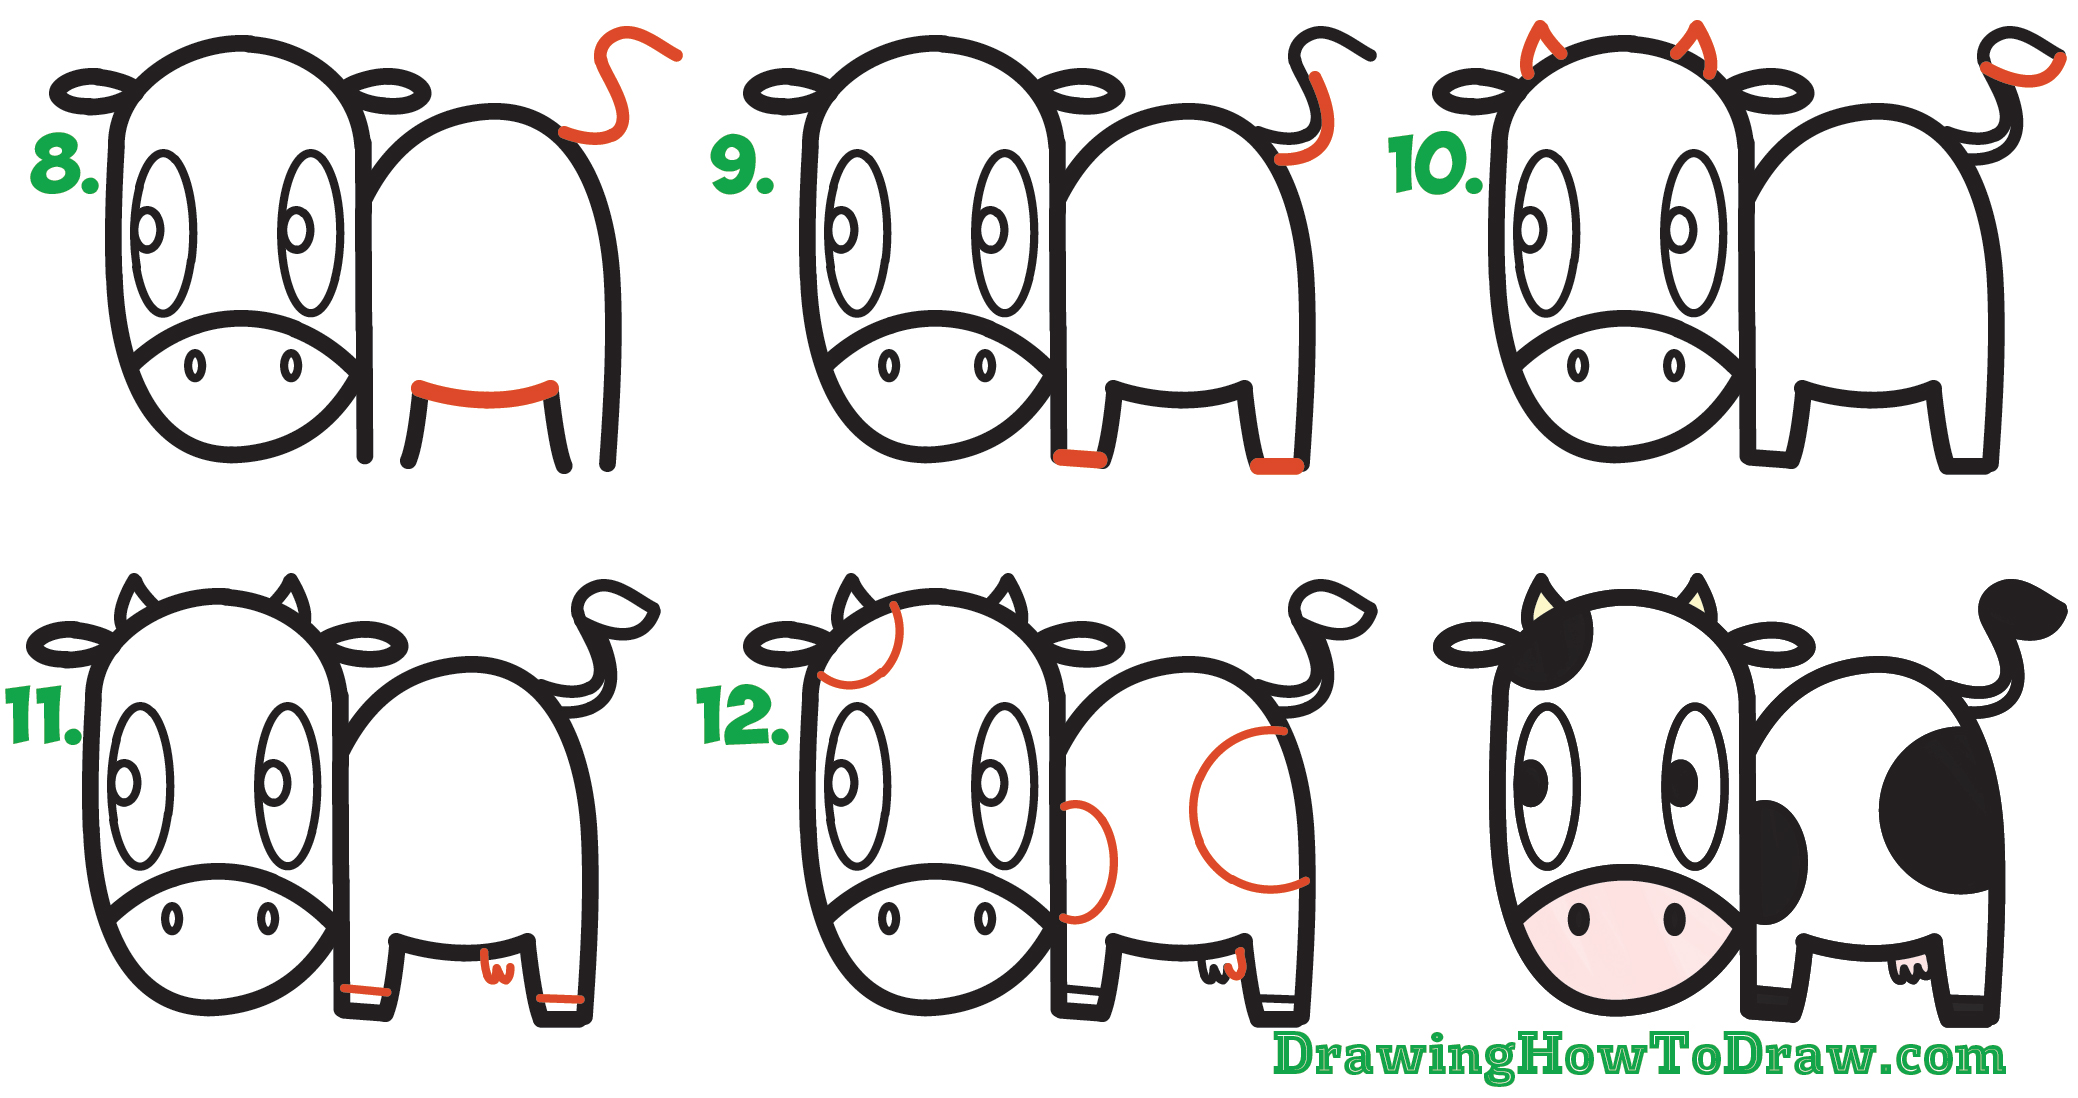 Uncategorized Draw Cow how to draw a cute cartoon kawaii cow easy step by drawing learn simple steps lesson for children